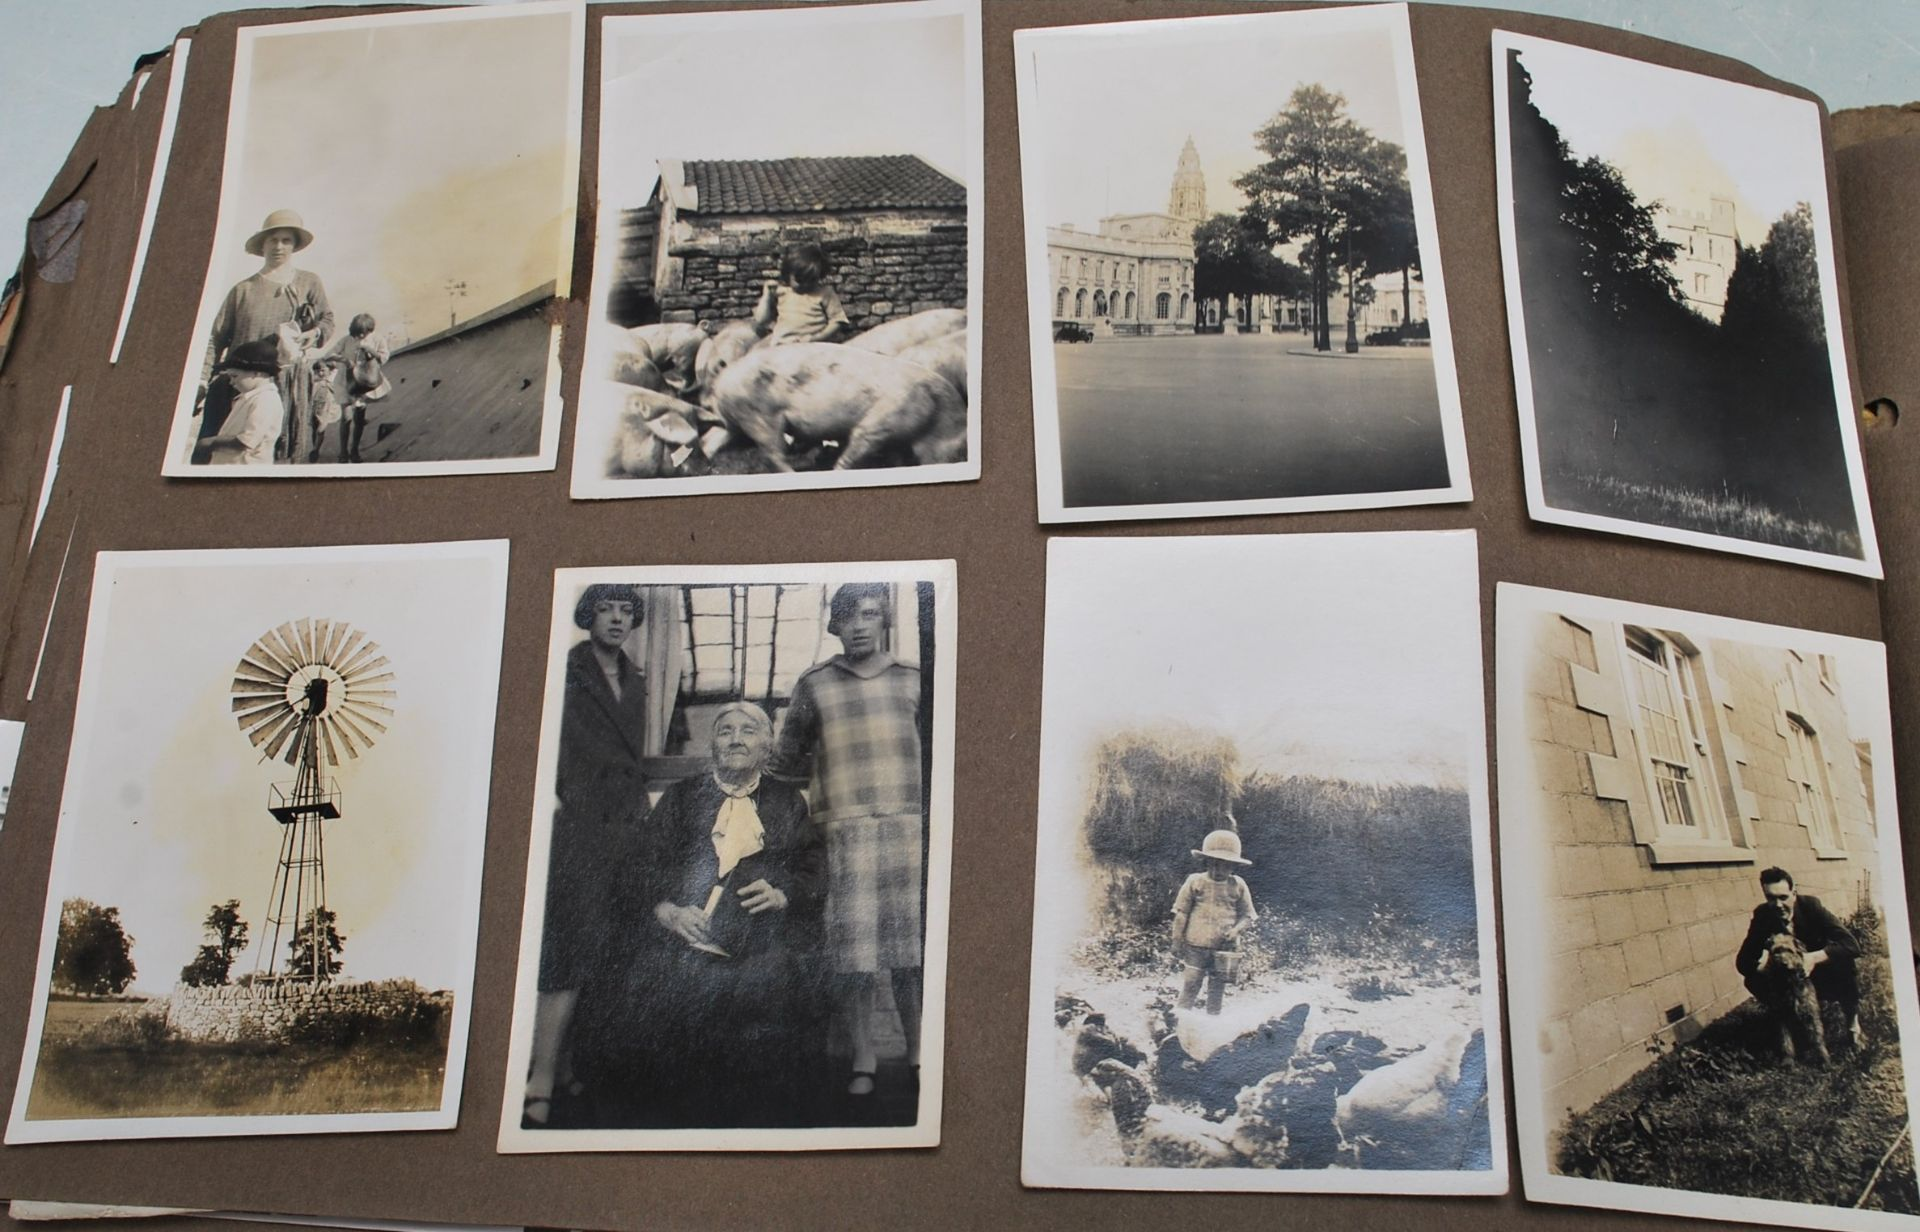 EARLY 20TH CENTURY BLACK AND WHITE PHOTO ALBUM - Image 13 of 14